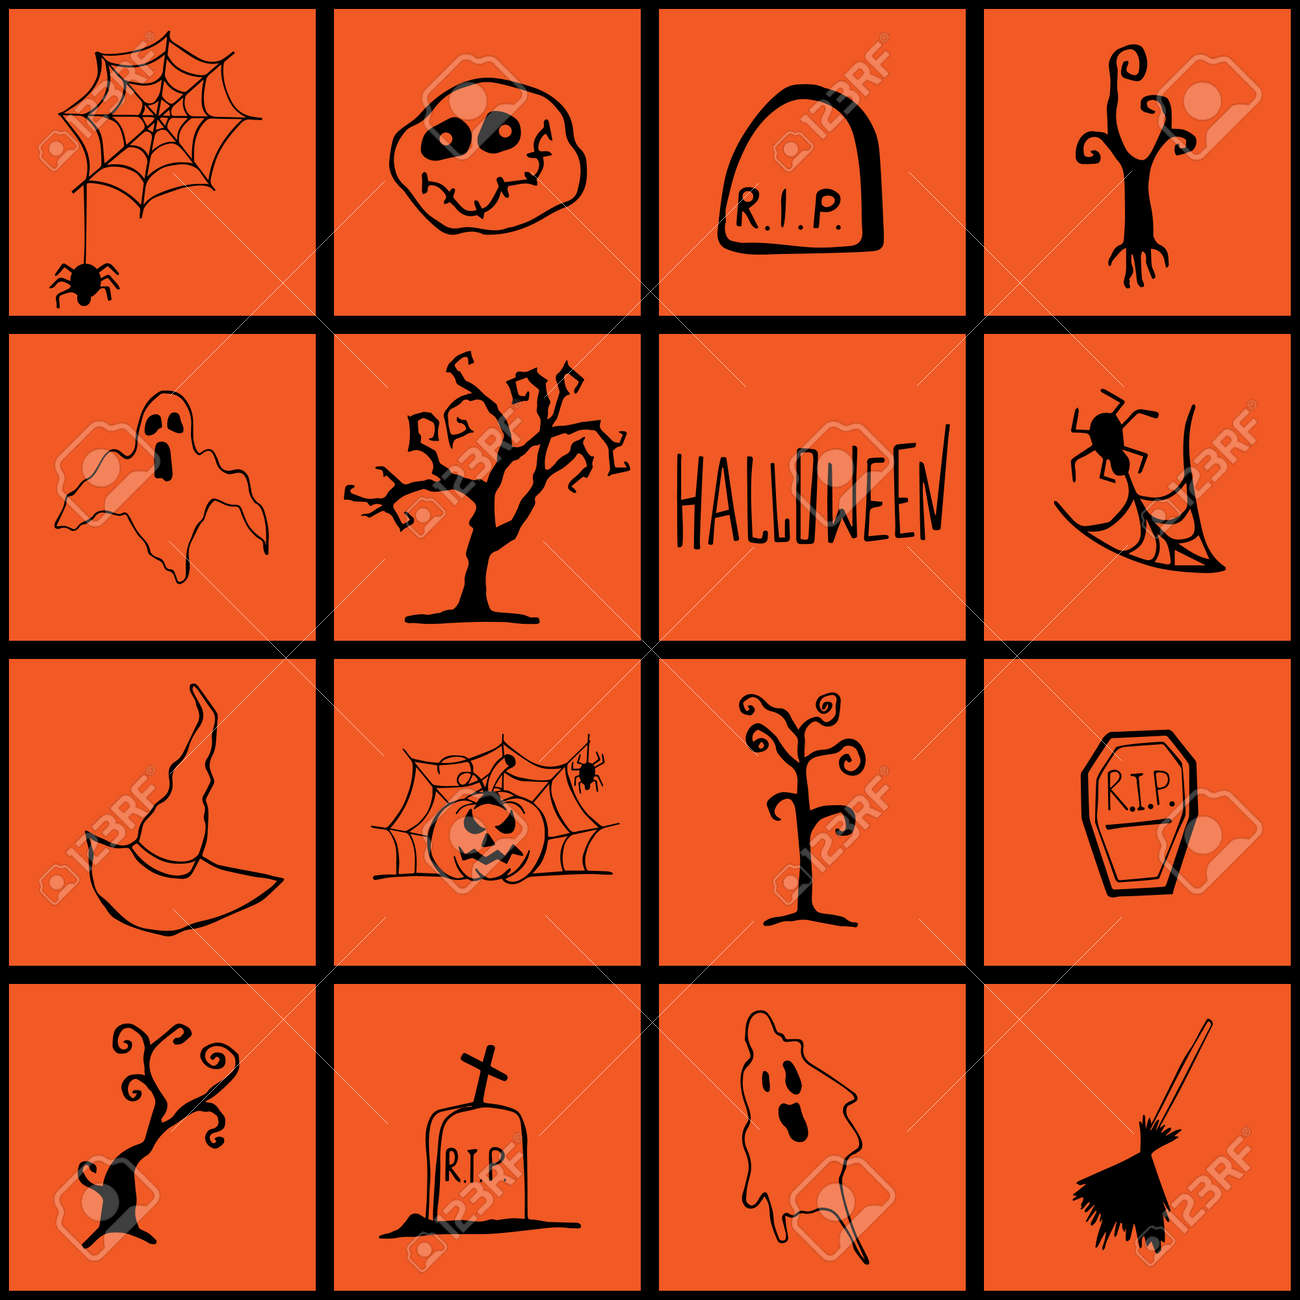 Halloween doodle set hand drawn. Halloween vector collection of holiday symbols. Pumpkin, grave, ghost, horror and other drawn vector Halloween elements. - 170750520